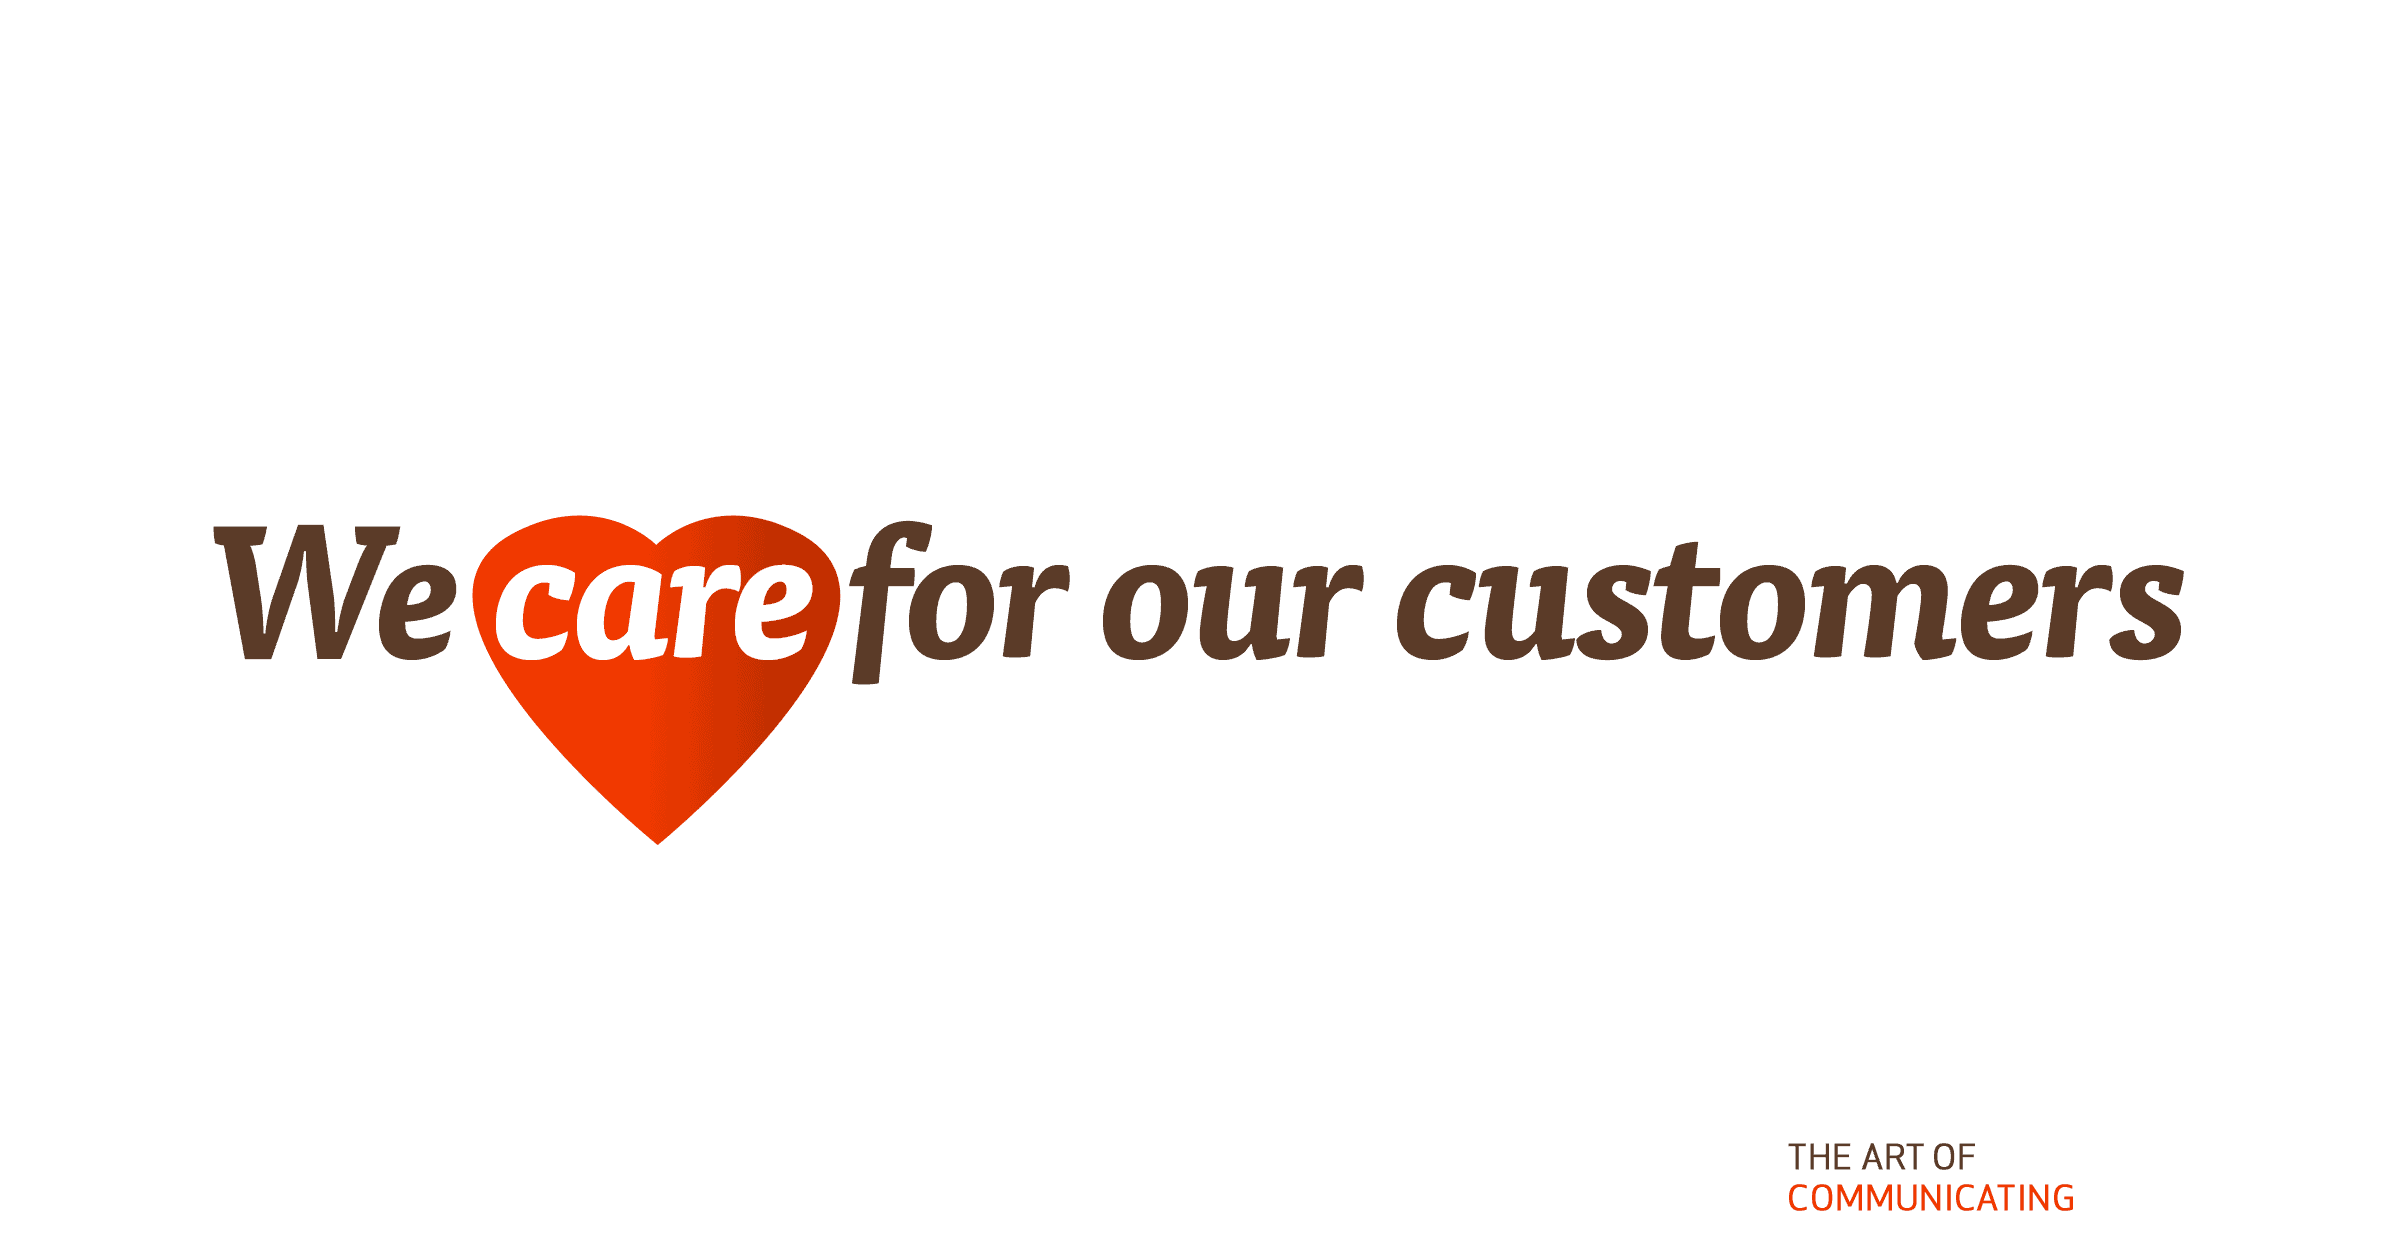 We care for our customers